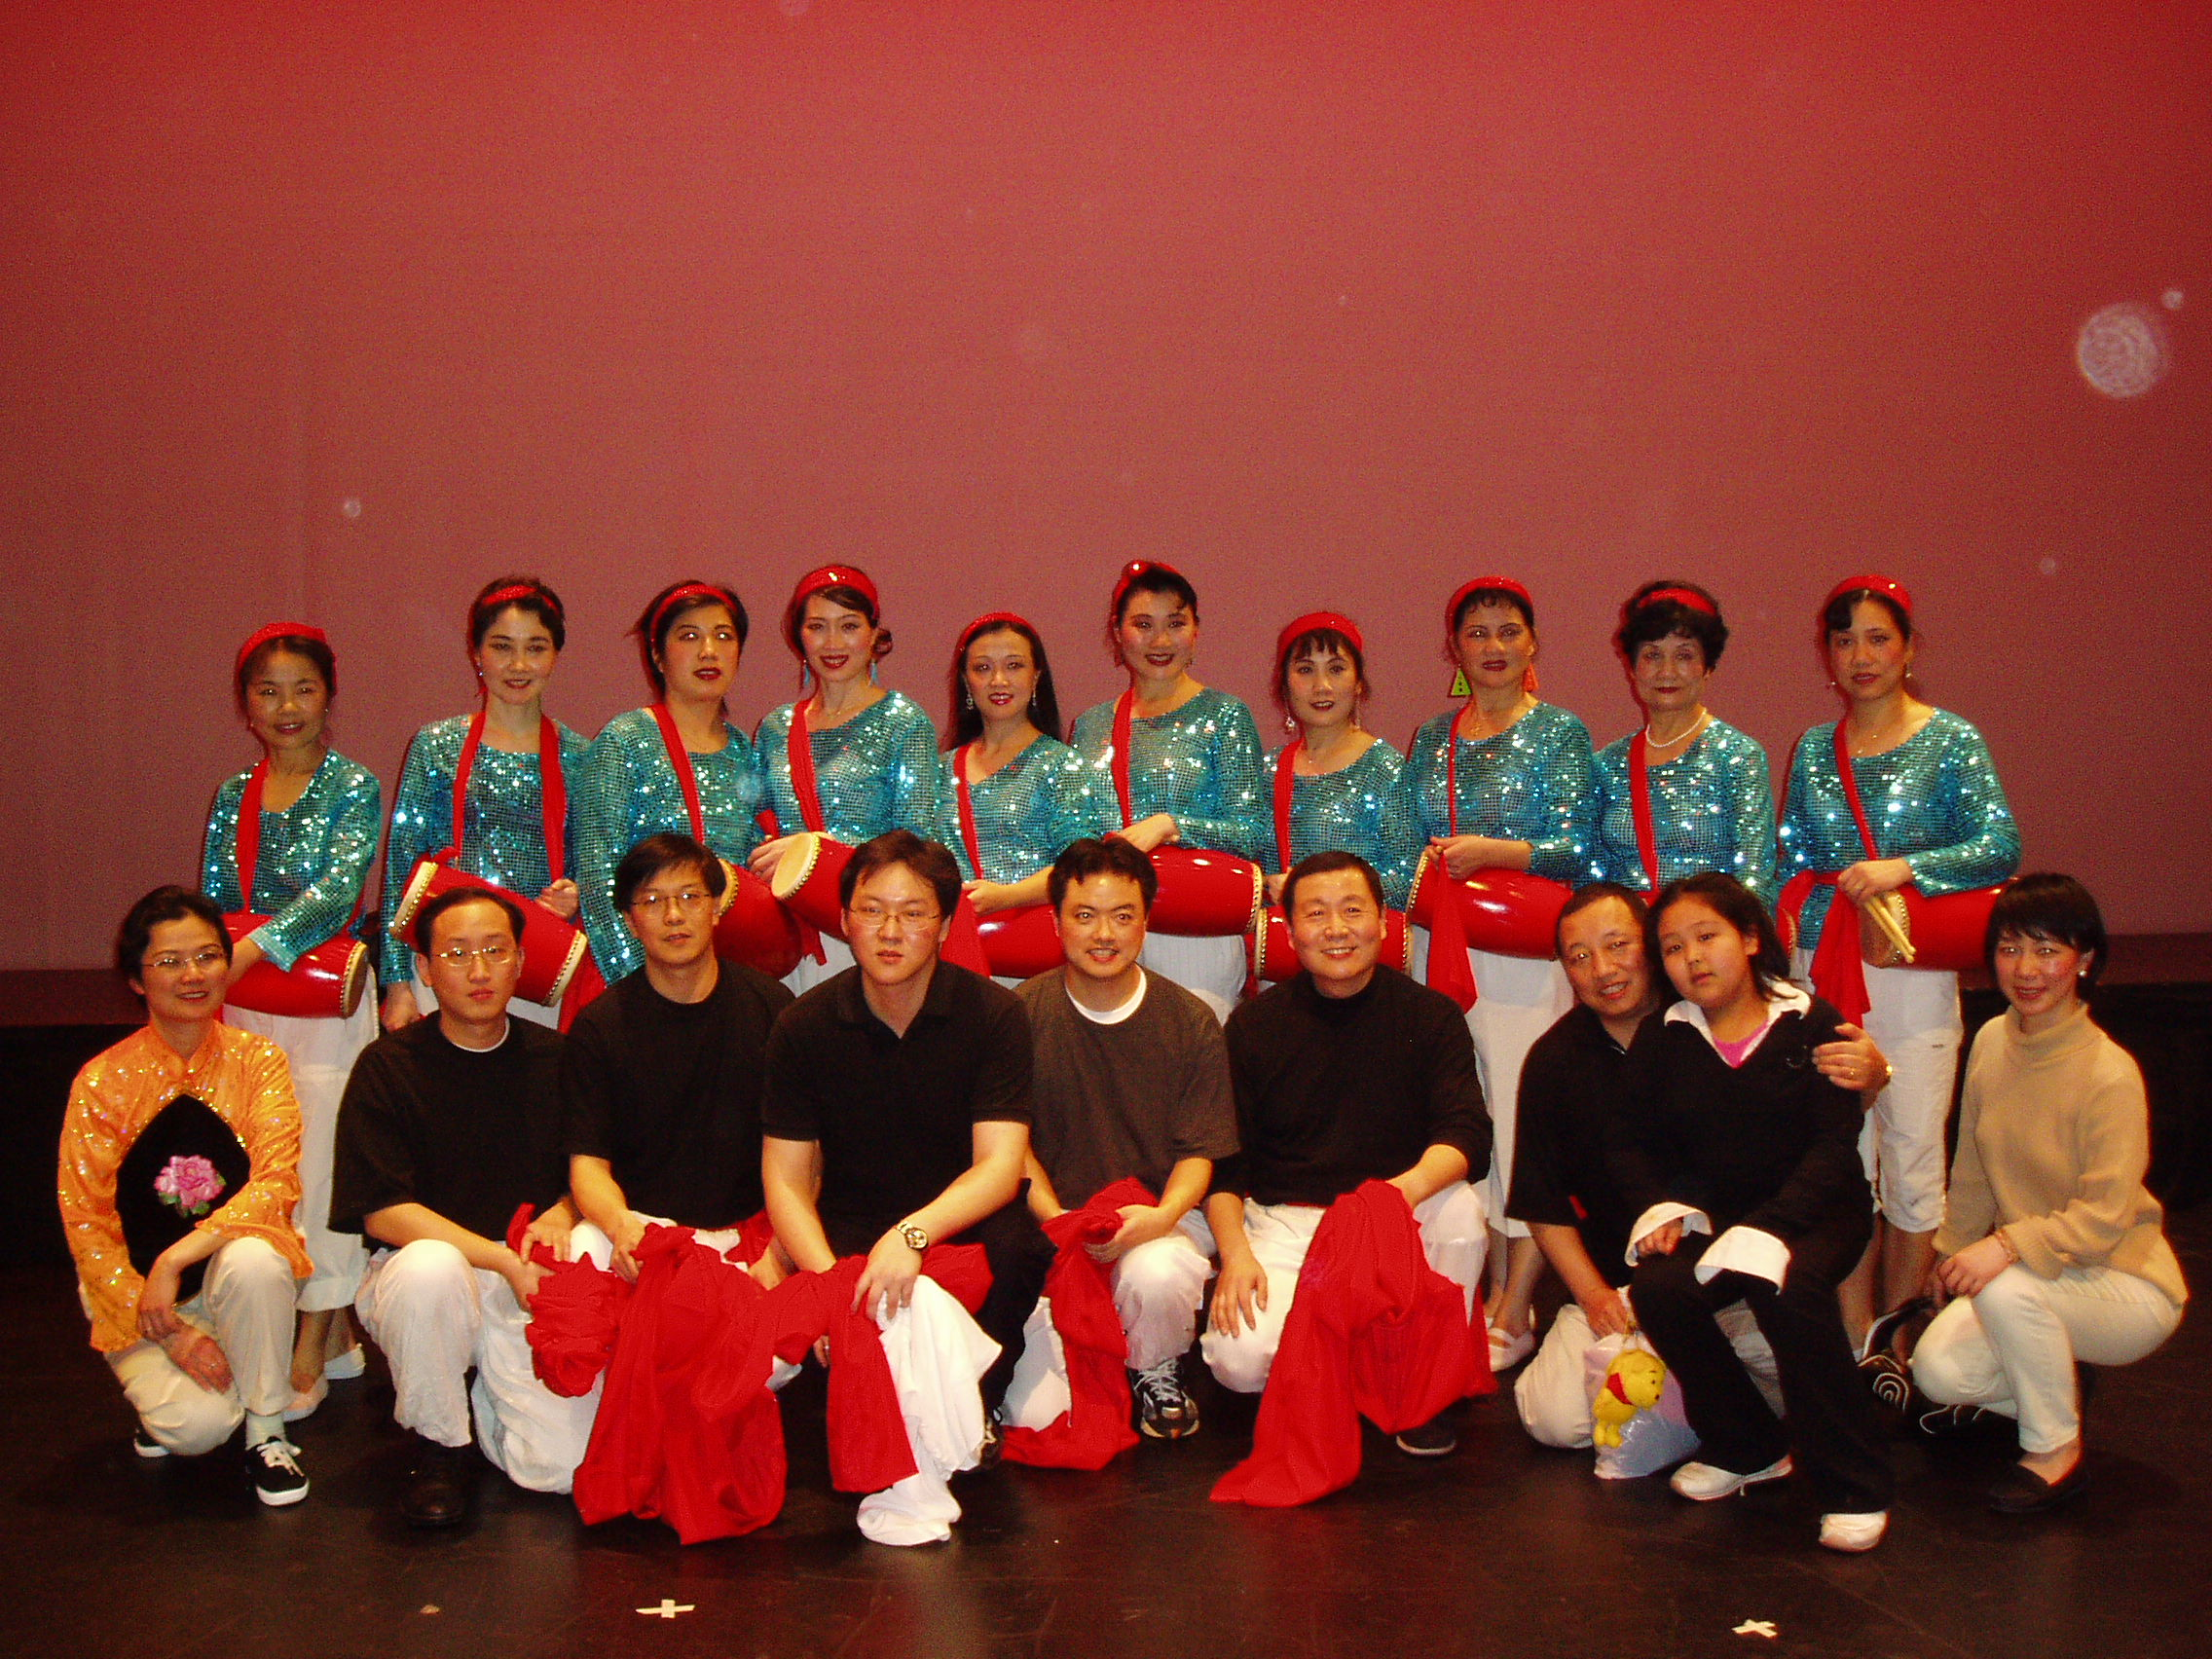 2005 Chinese New Year Celebration Image 1